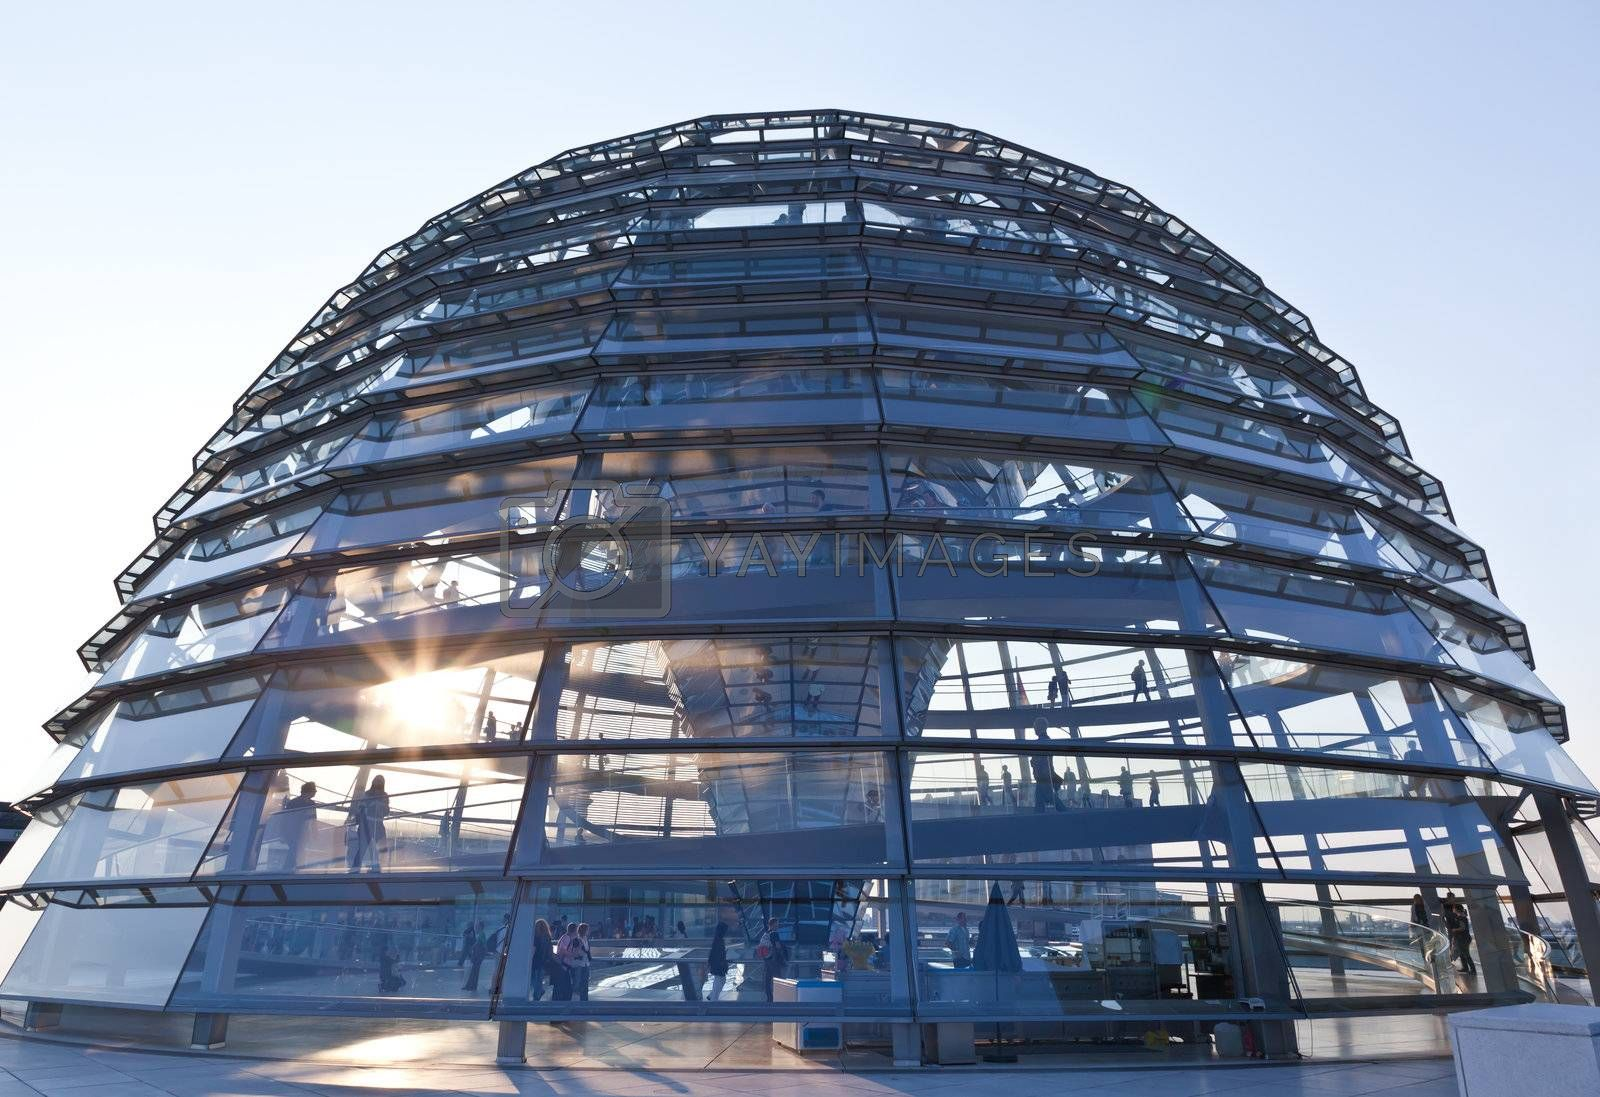 The Cupola on top of the Reichstag building in Berlin